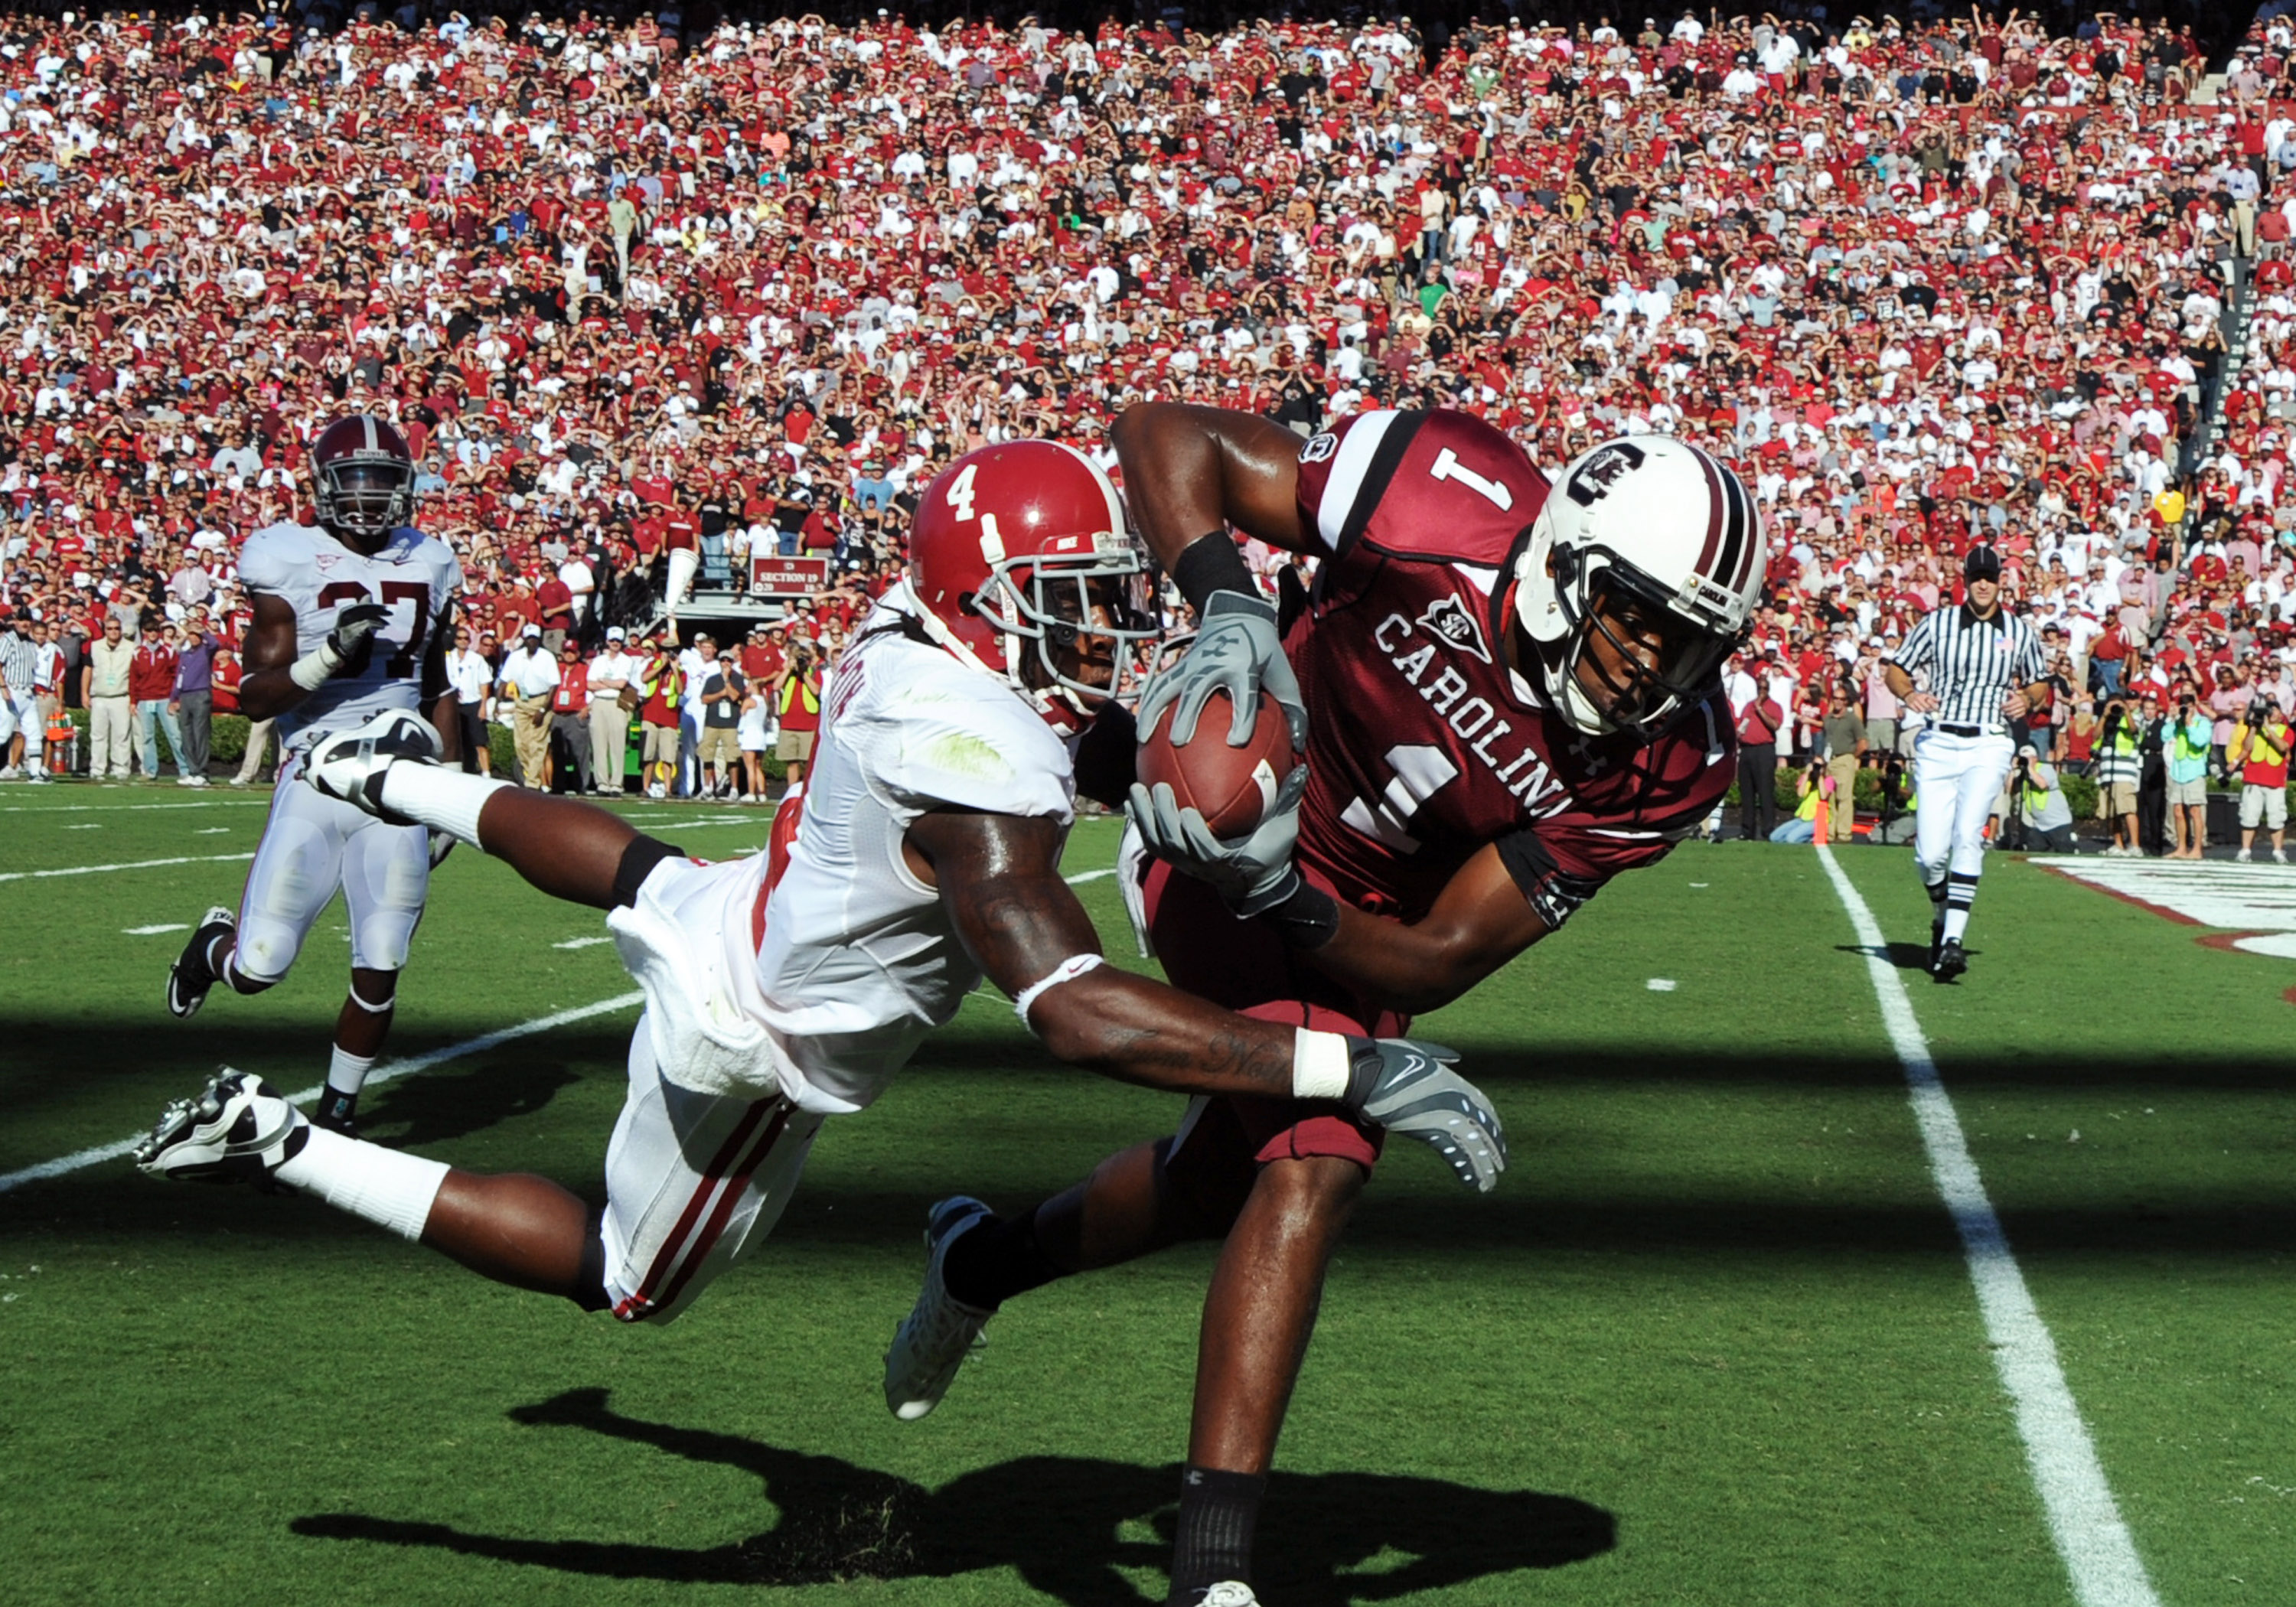 COLUMBIA, SC - OCTOBER 9: Wide receiver Alshon Jefrey #1 of the South Carolina Gamecocks grabs a touchdown pass against the Alabama Crimson Tide October 9, 2010 at Williams-Brice Stadium in Columbia, South Carolina.  (Photo by Al Messerschmidt/Getty Image